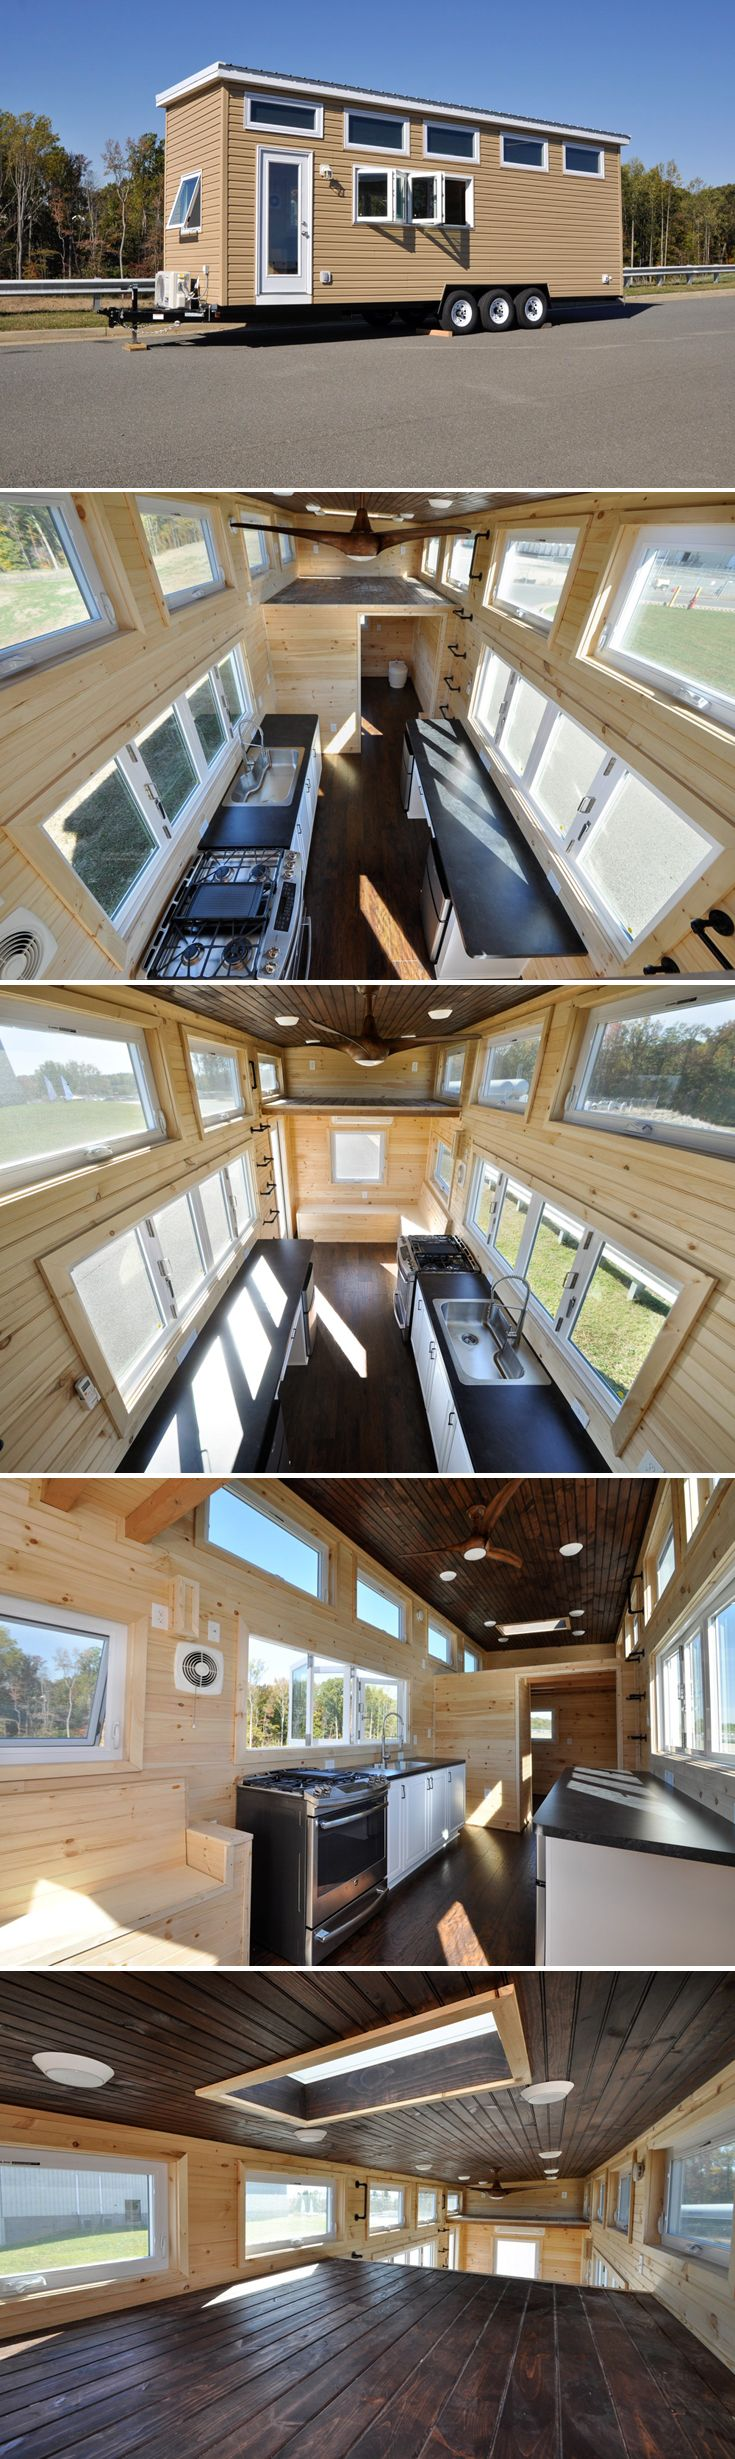 With its two accordion style windows, the Hillside by Tiny House Building Company helps you feel apart of the outdoors while enjoying the comforts of home.